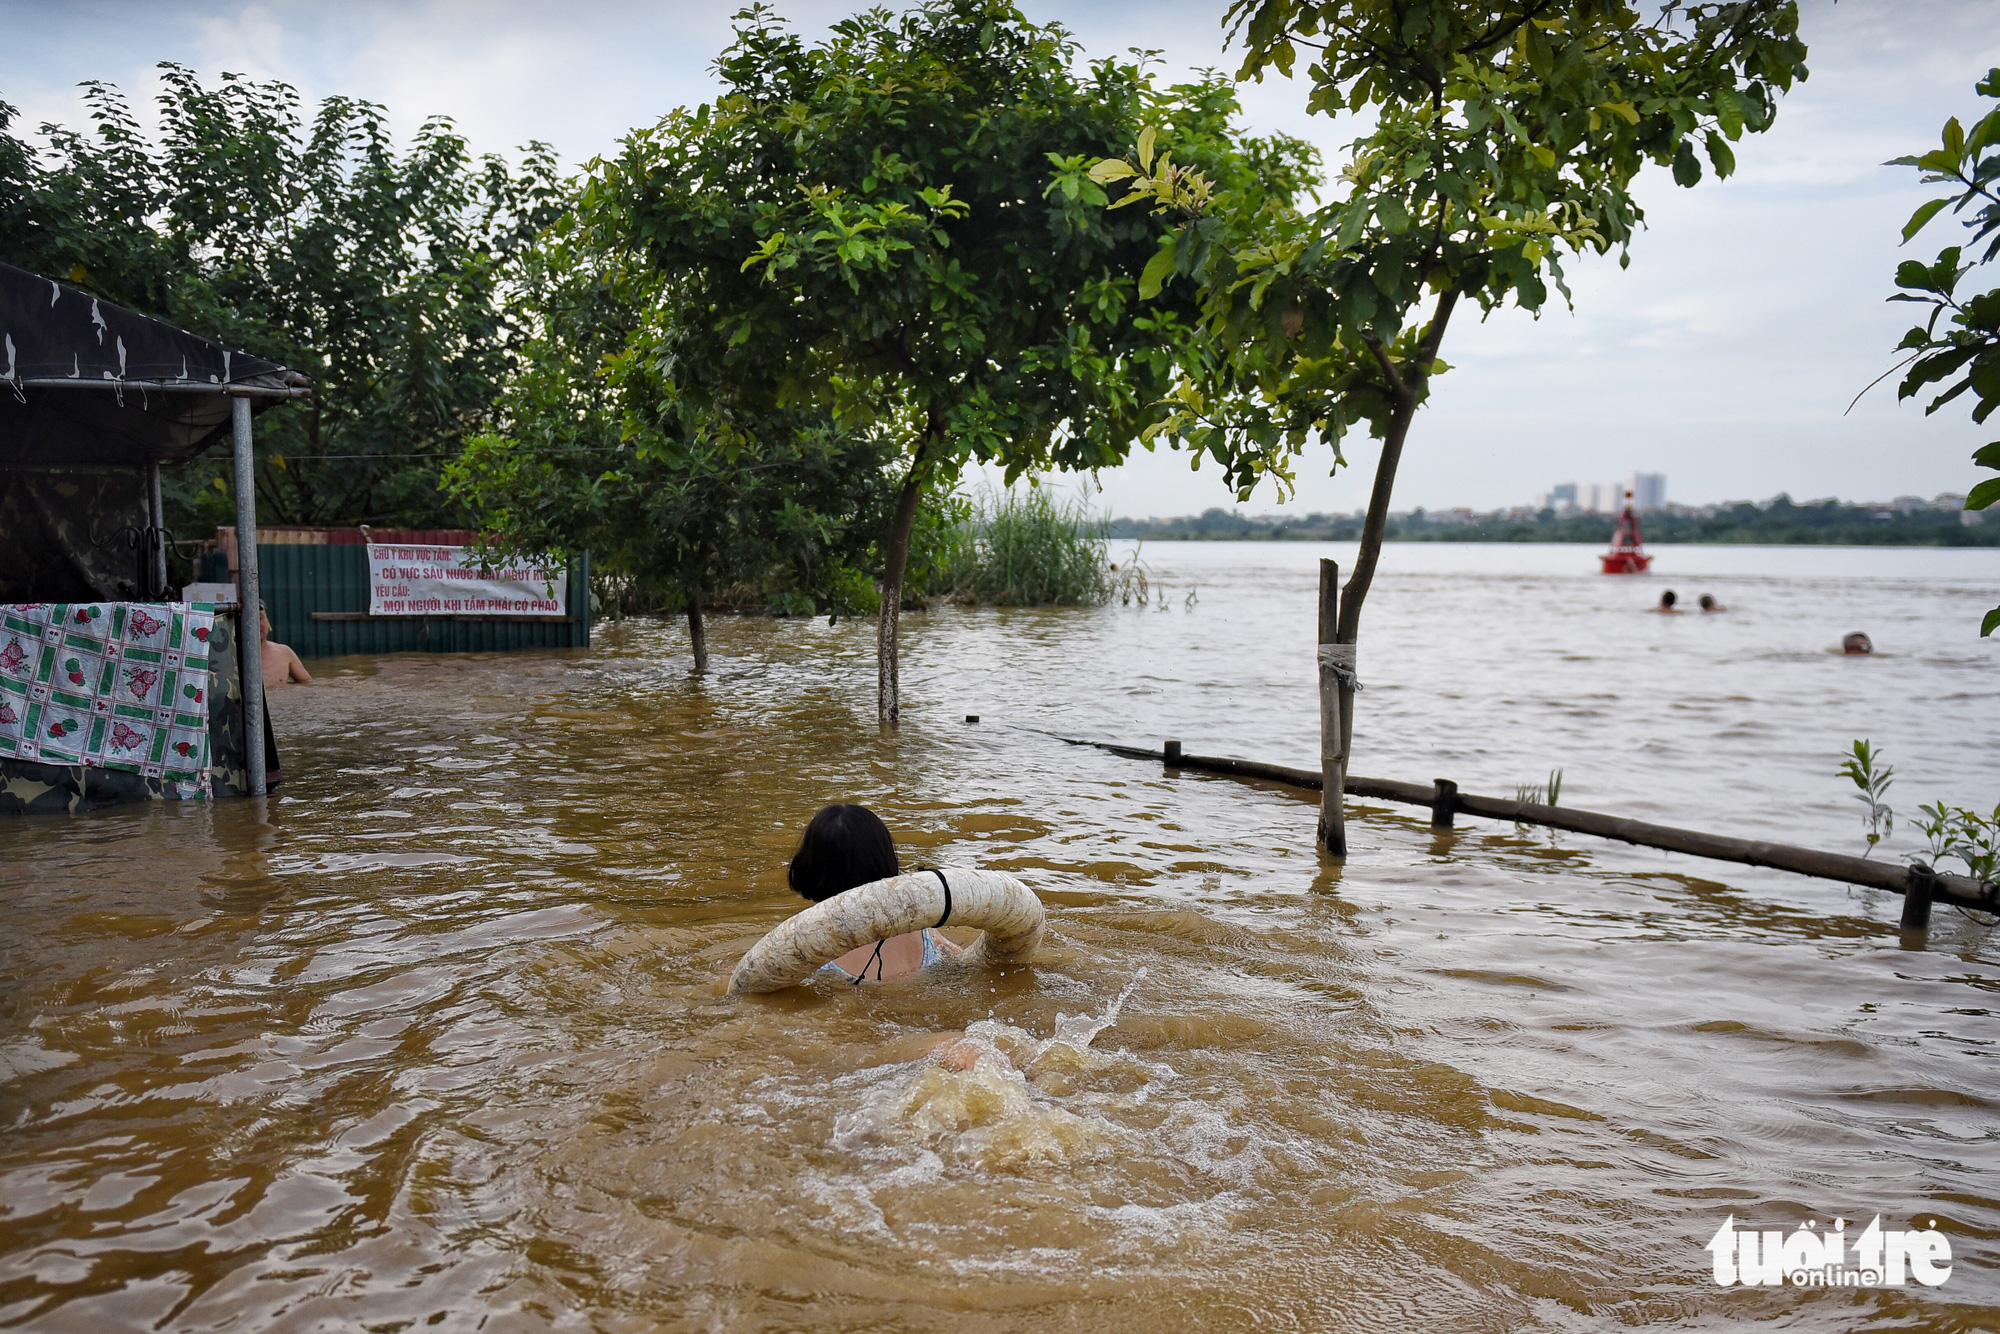 A young girl practices swimming at a shallow area in the Hong River in Hanoi, August 22, 2020. Photo: Hoang Thanh Tung / Tuoi Tre